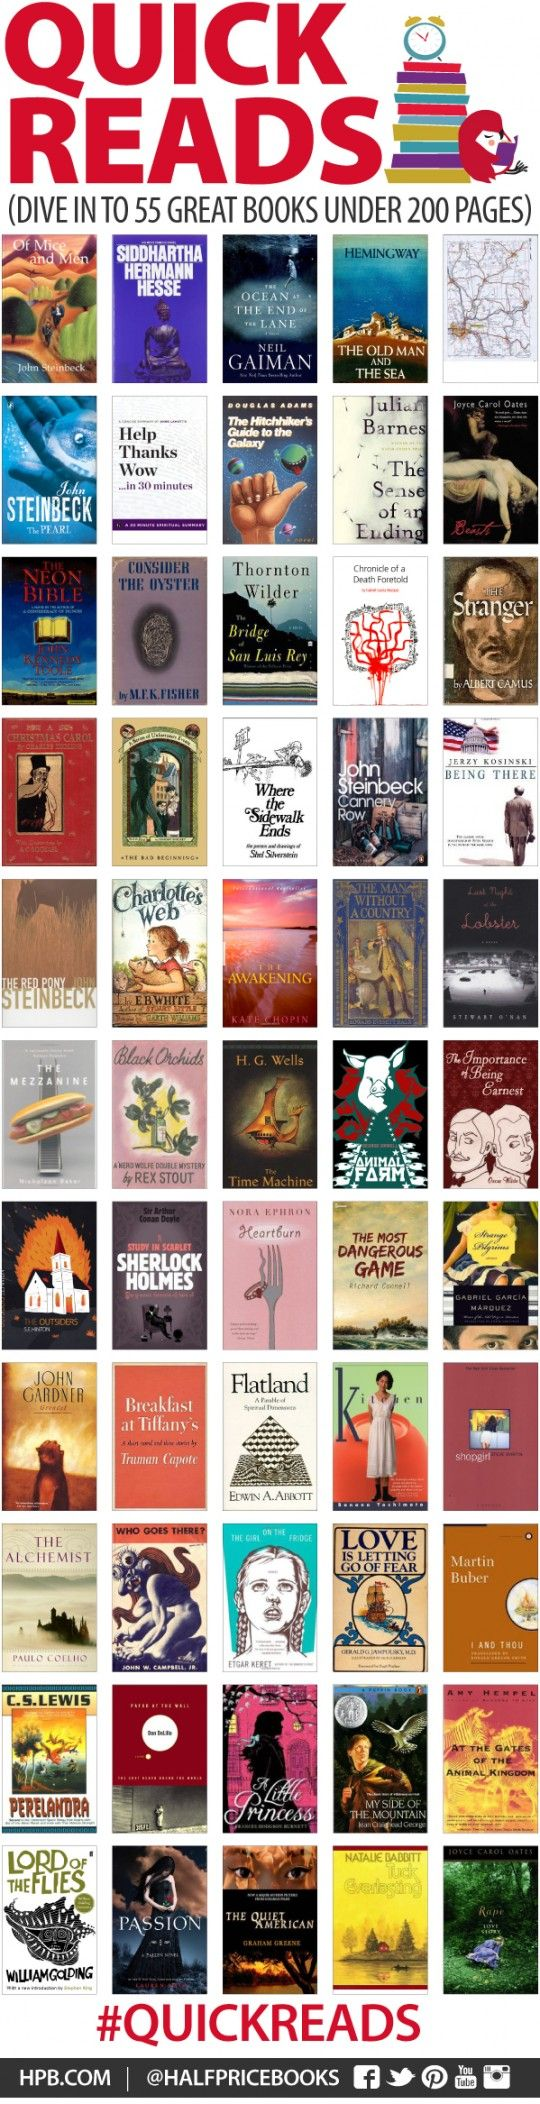 55 great books under 200 pages - infographic